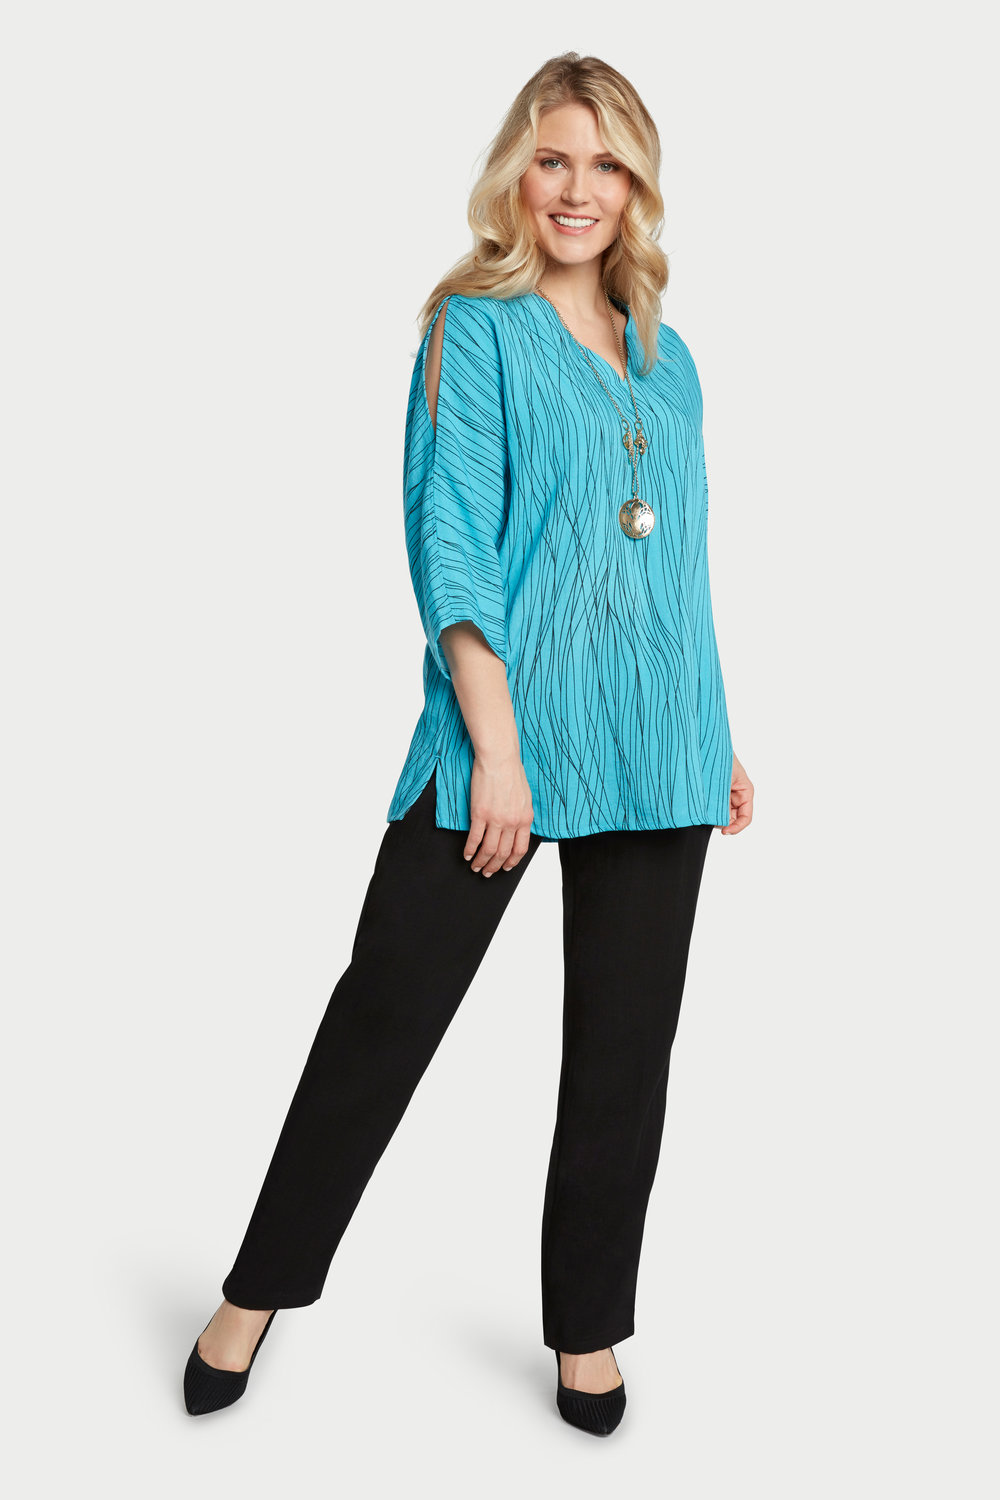 AA254 - Peek-a-Boo Sleeves Pullover    Caribbean Waves - CL2567W